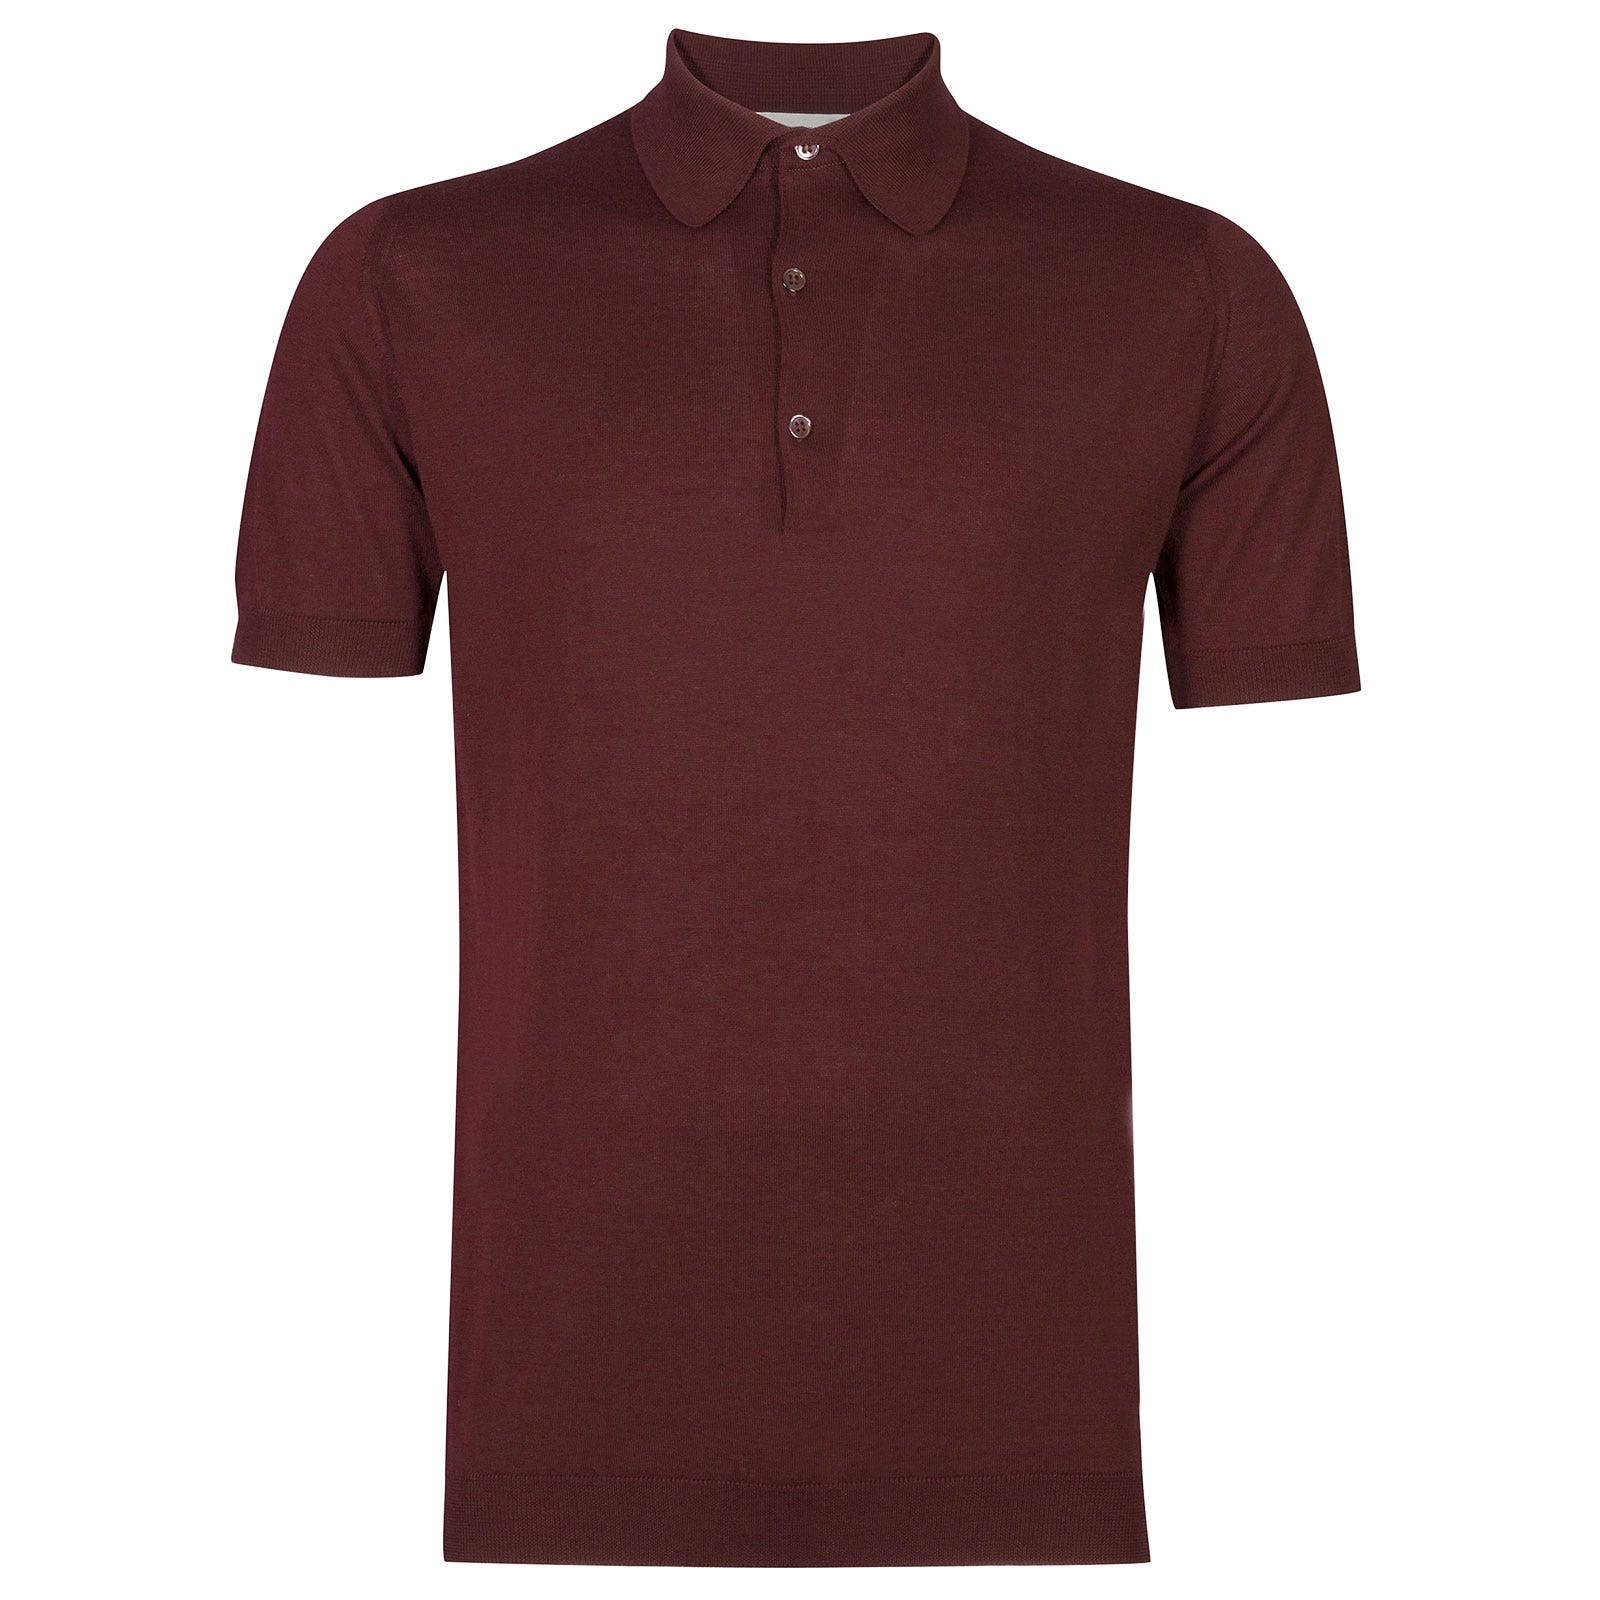 John Smedley Adrian Sea Island Cotton Shirt in Burgundy Grain-XL